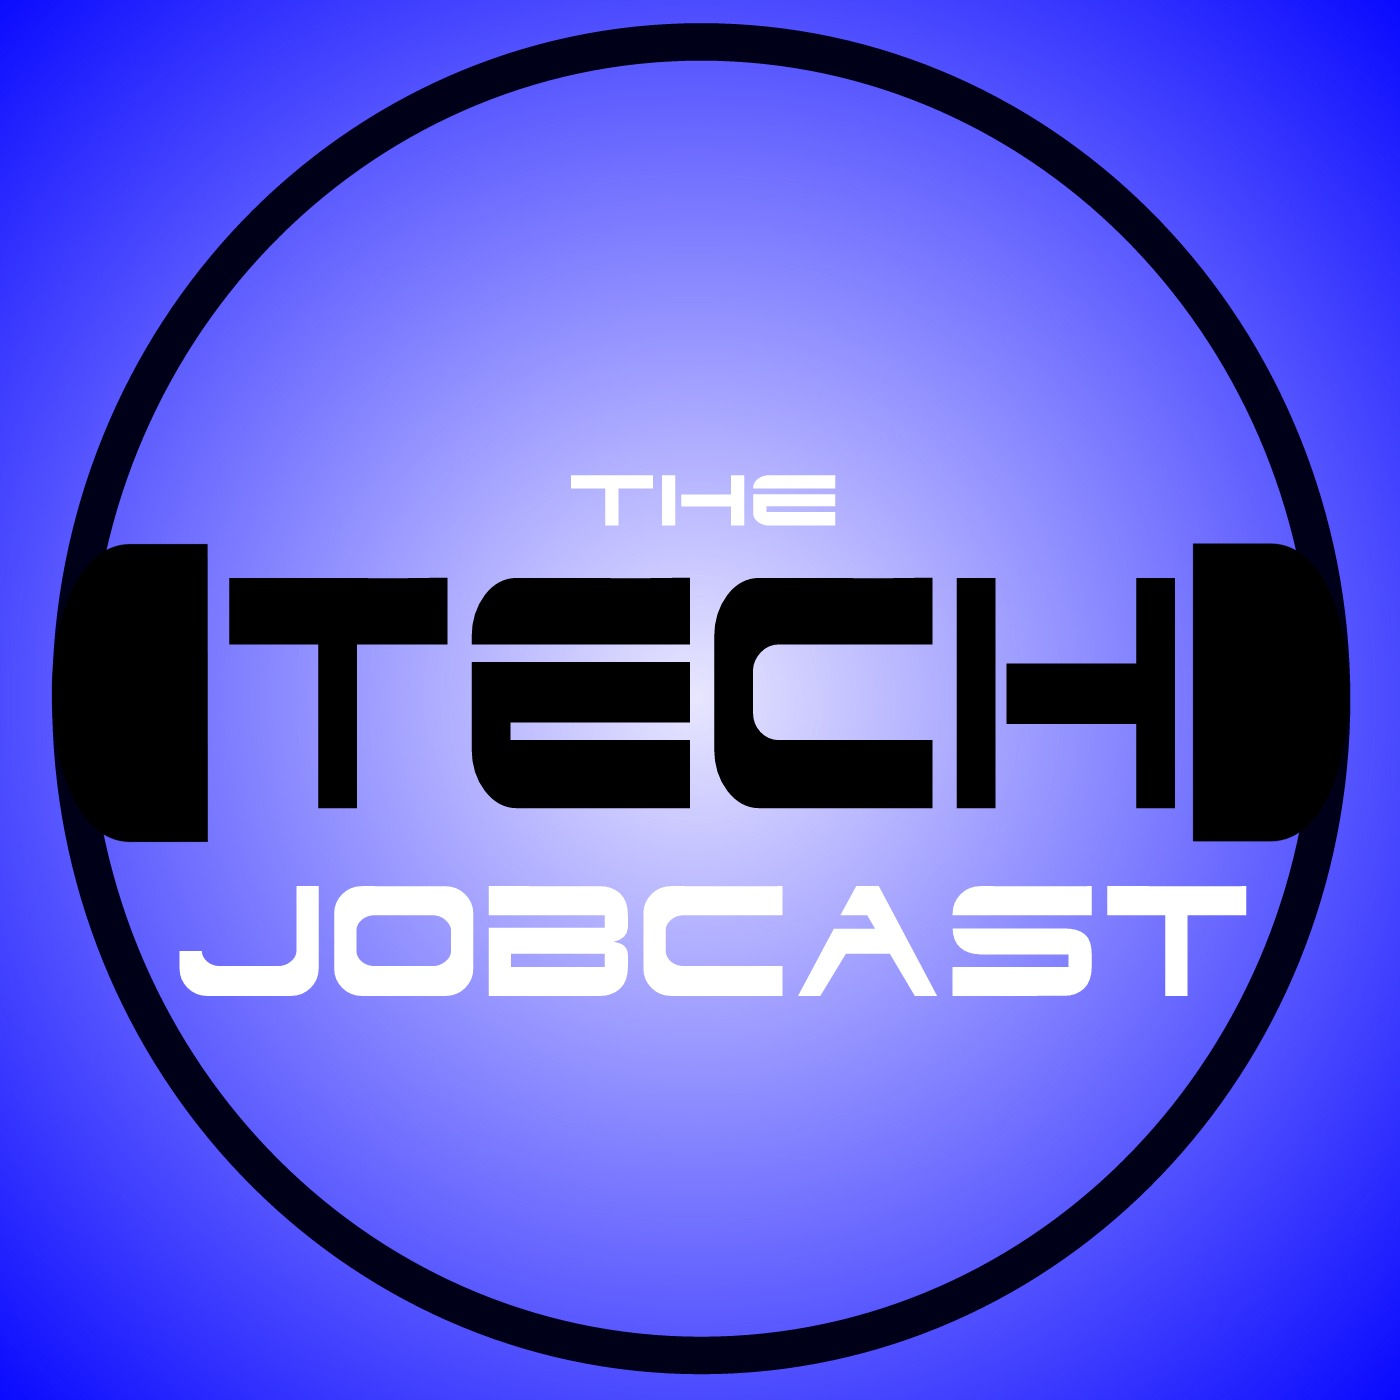 IT Job listings for the week of July 12, 2020